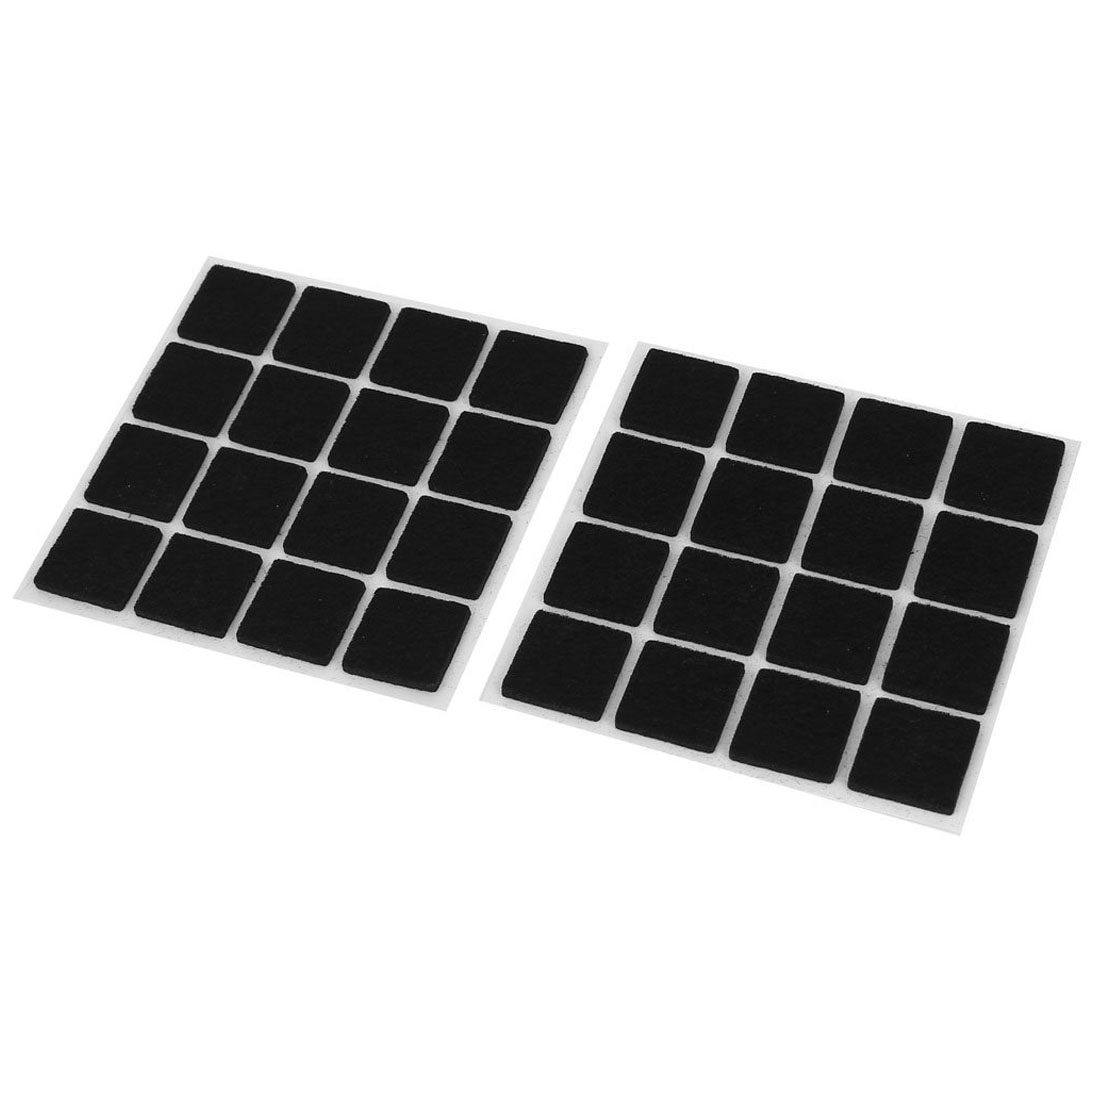 Self Adhesive Floor Protectors Furniture Felt Square Pads 32pcsSelf Adhesive Floor Protectors Furniture Felt Square Pads 32pcs